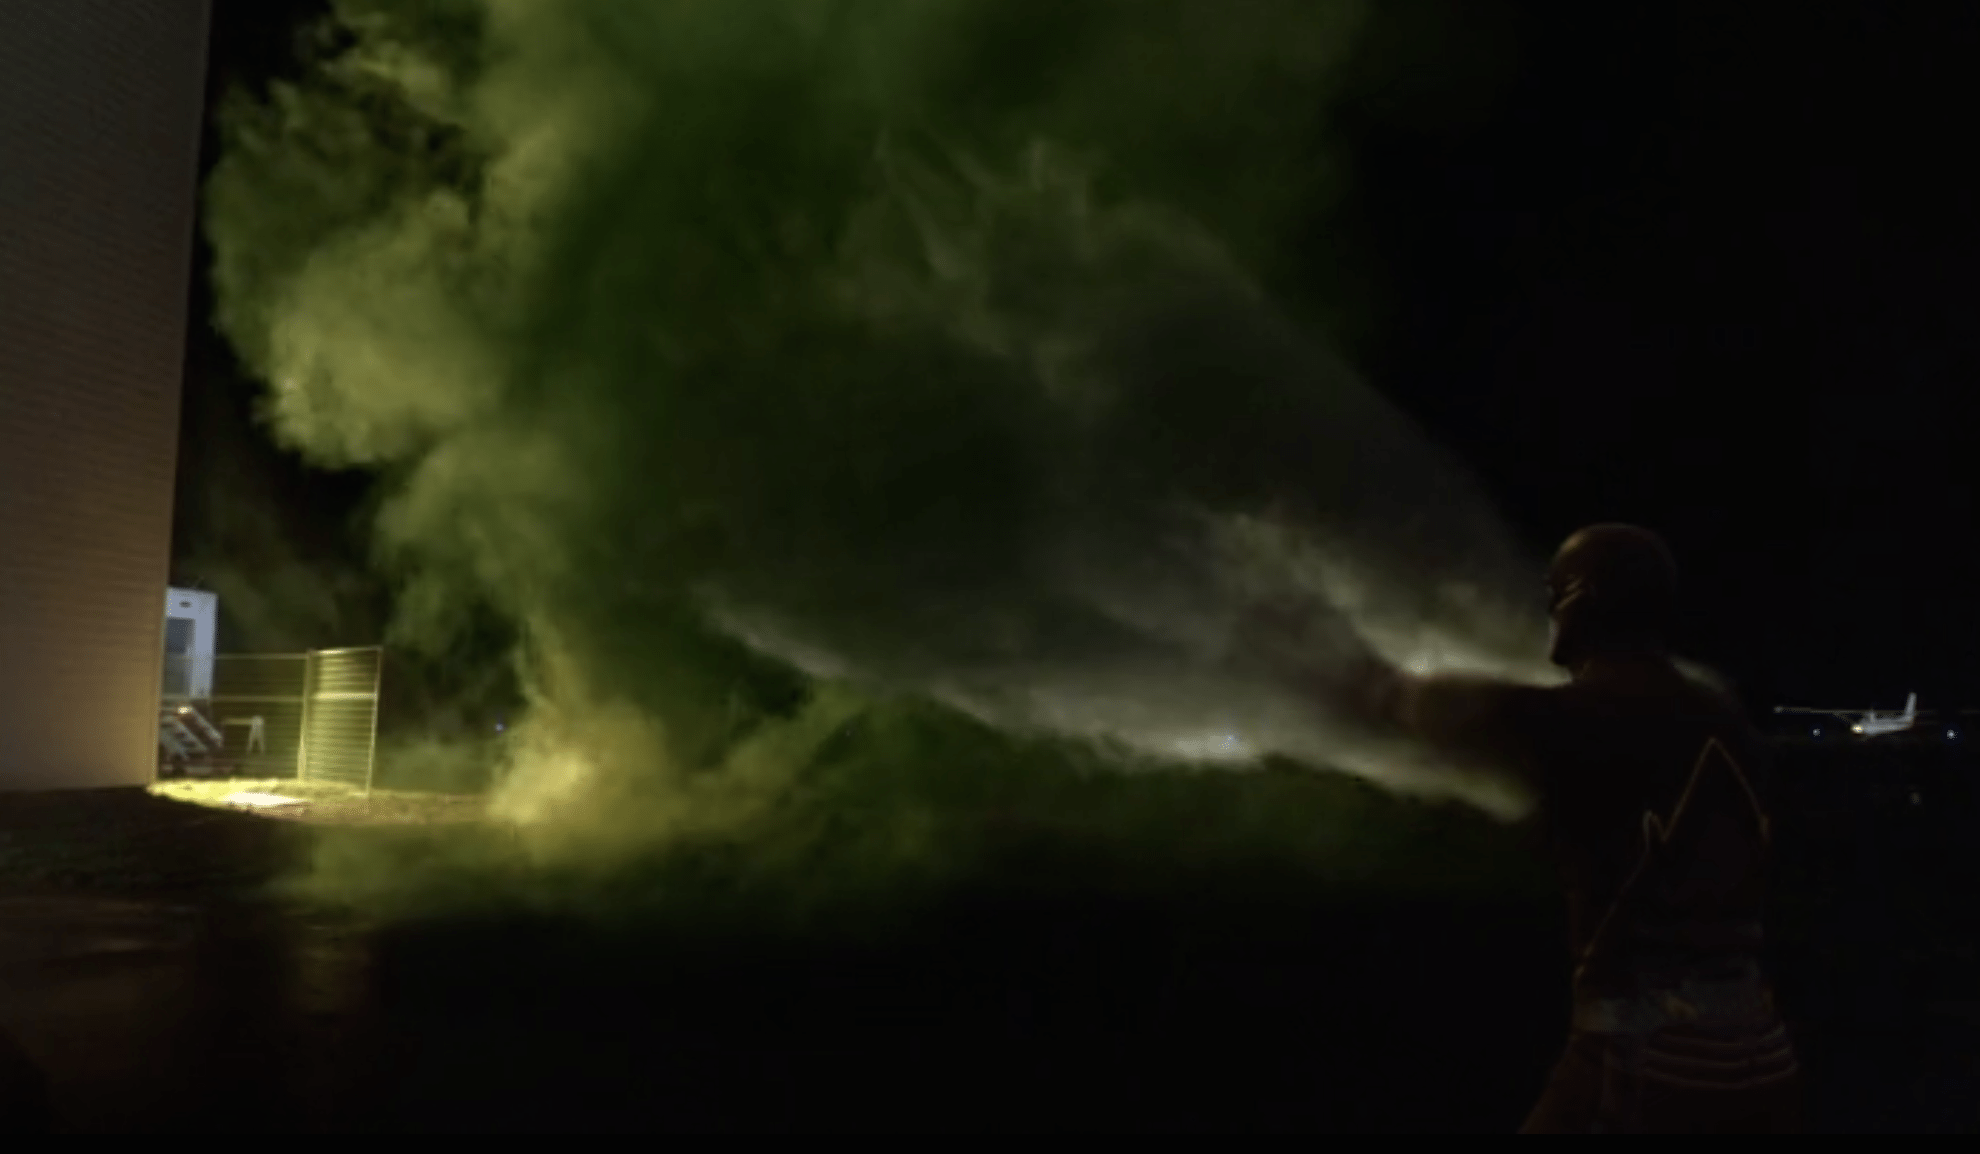 But at least Barry remembered the arm tornadoes. Source: CW.